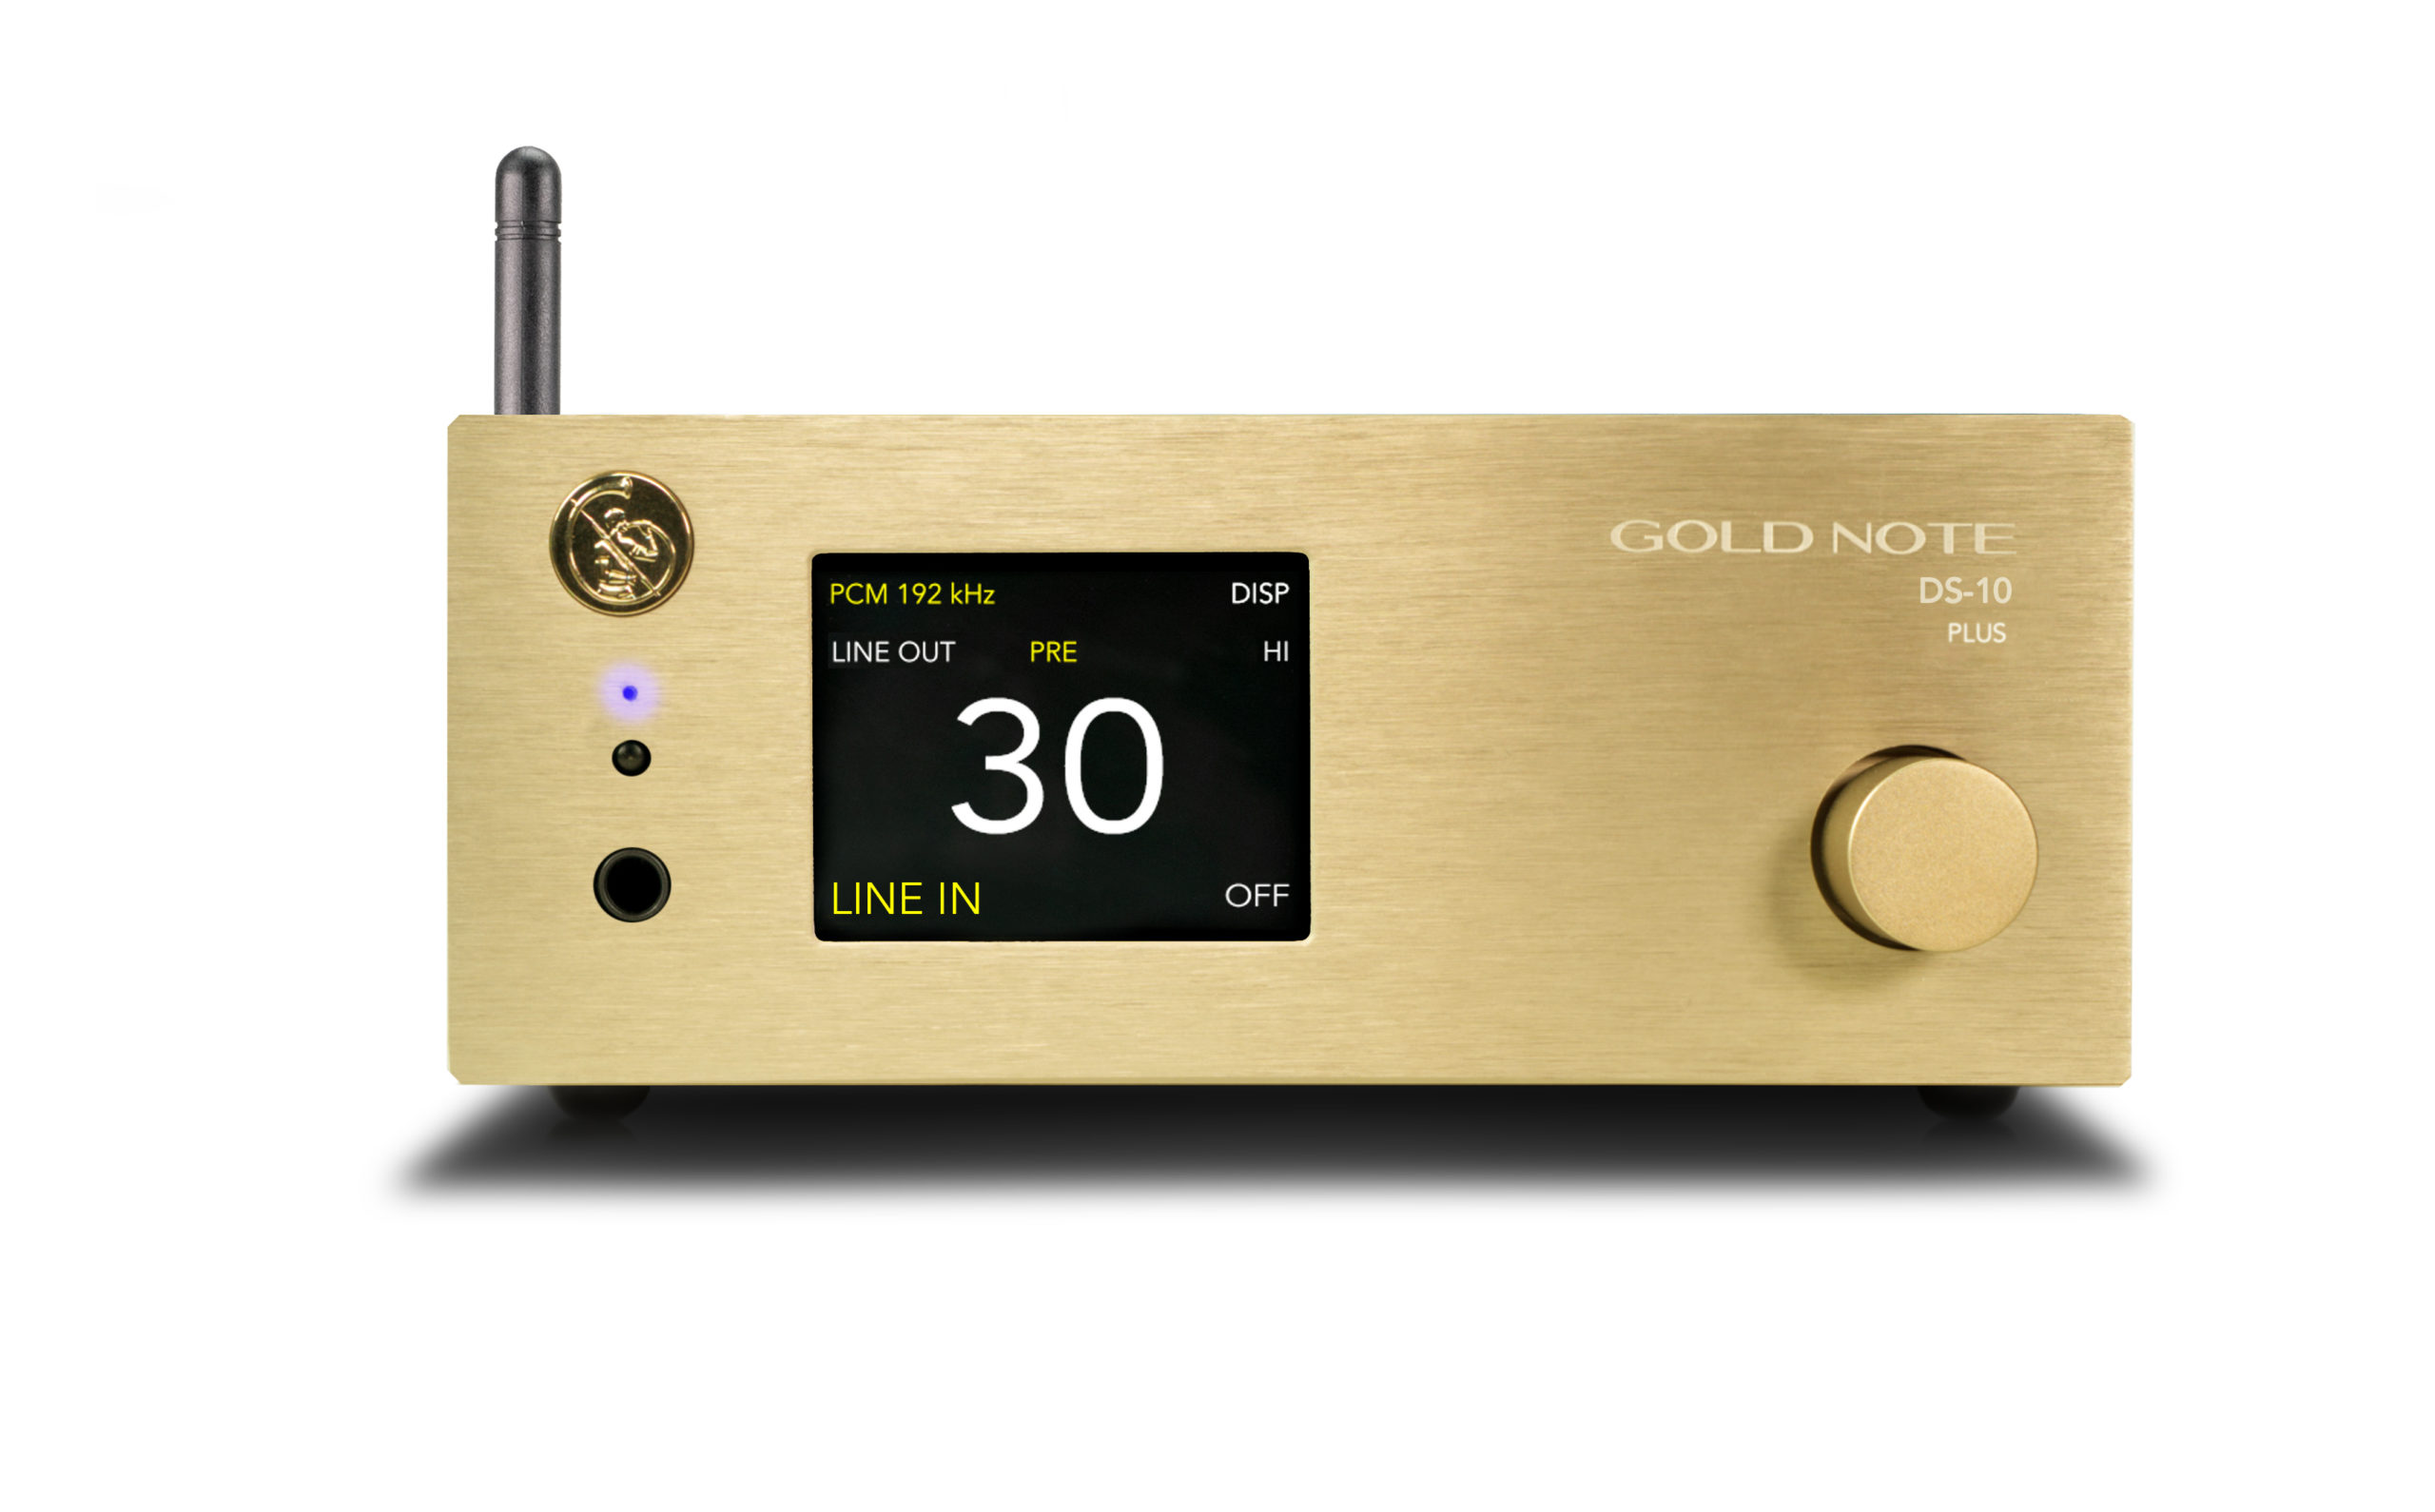 Gold Note DS-10 Plus Streaming DAC/Preamplifier